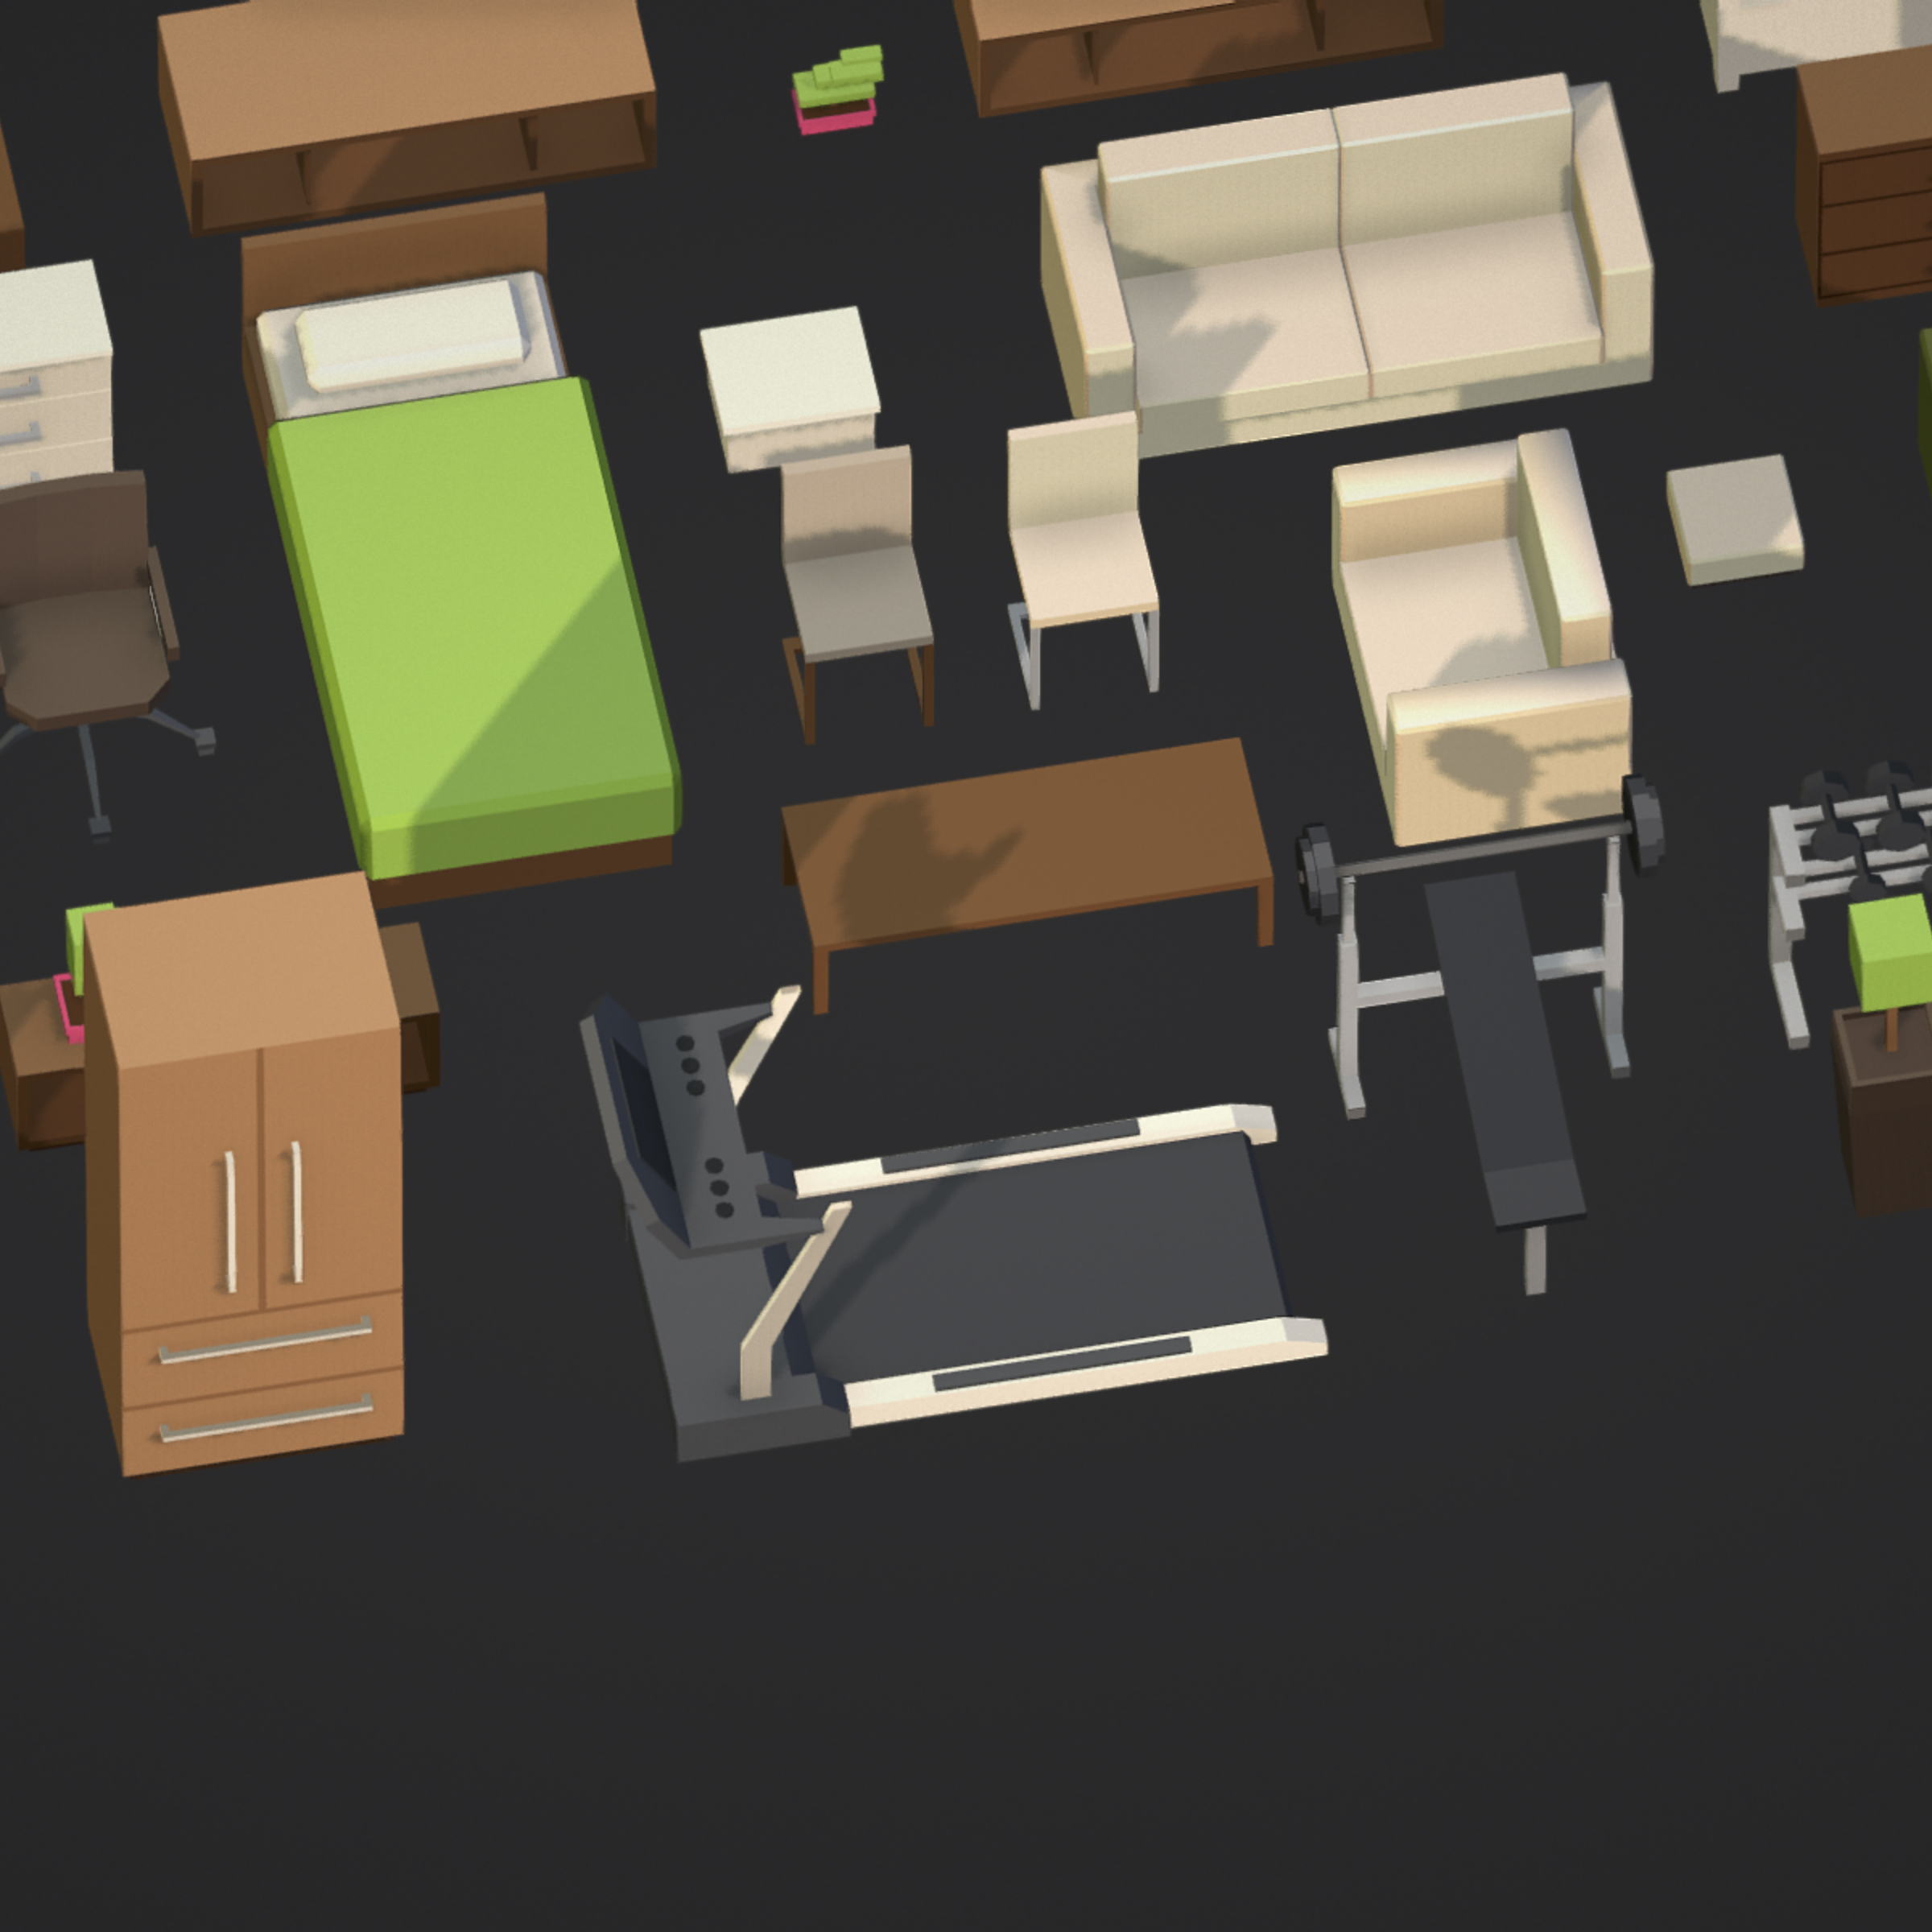 100 Object Isometric Home Office Furniture Fitness 3d Model Buy 100 Object Isometric Home